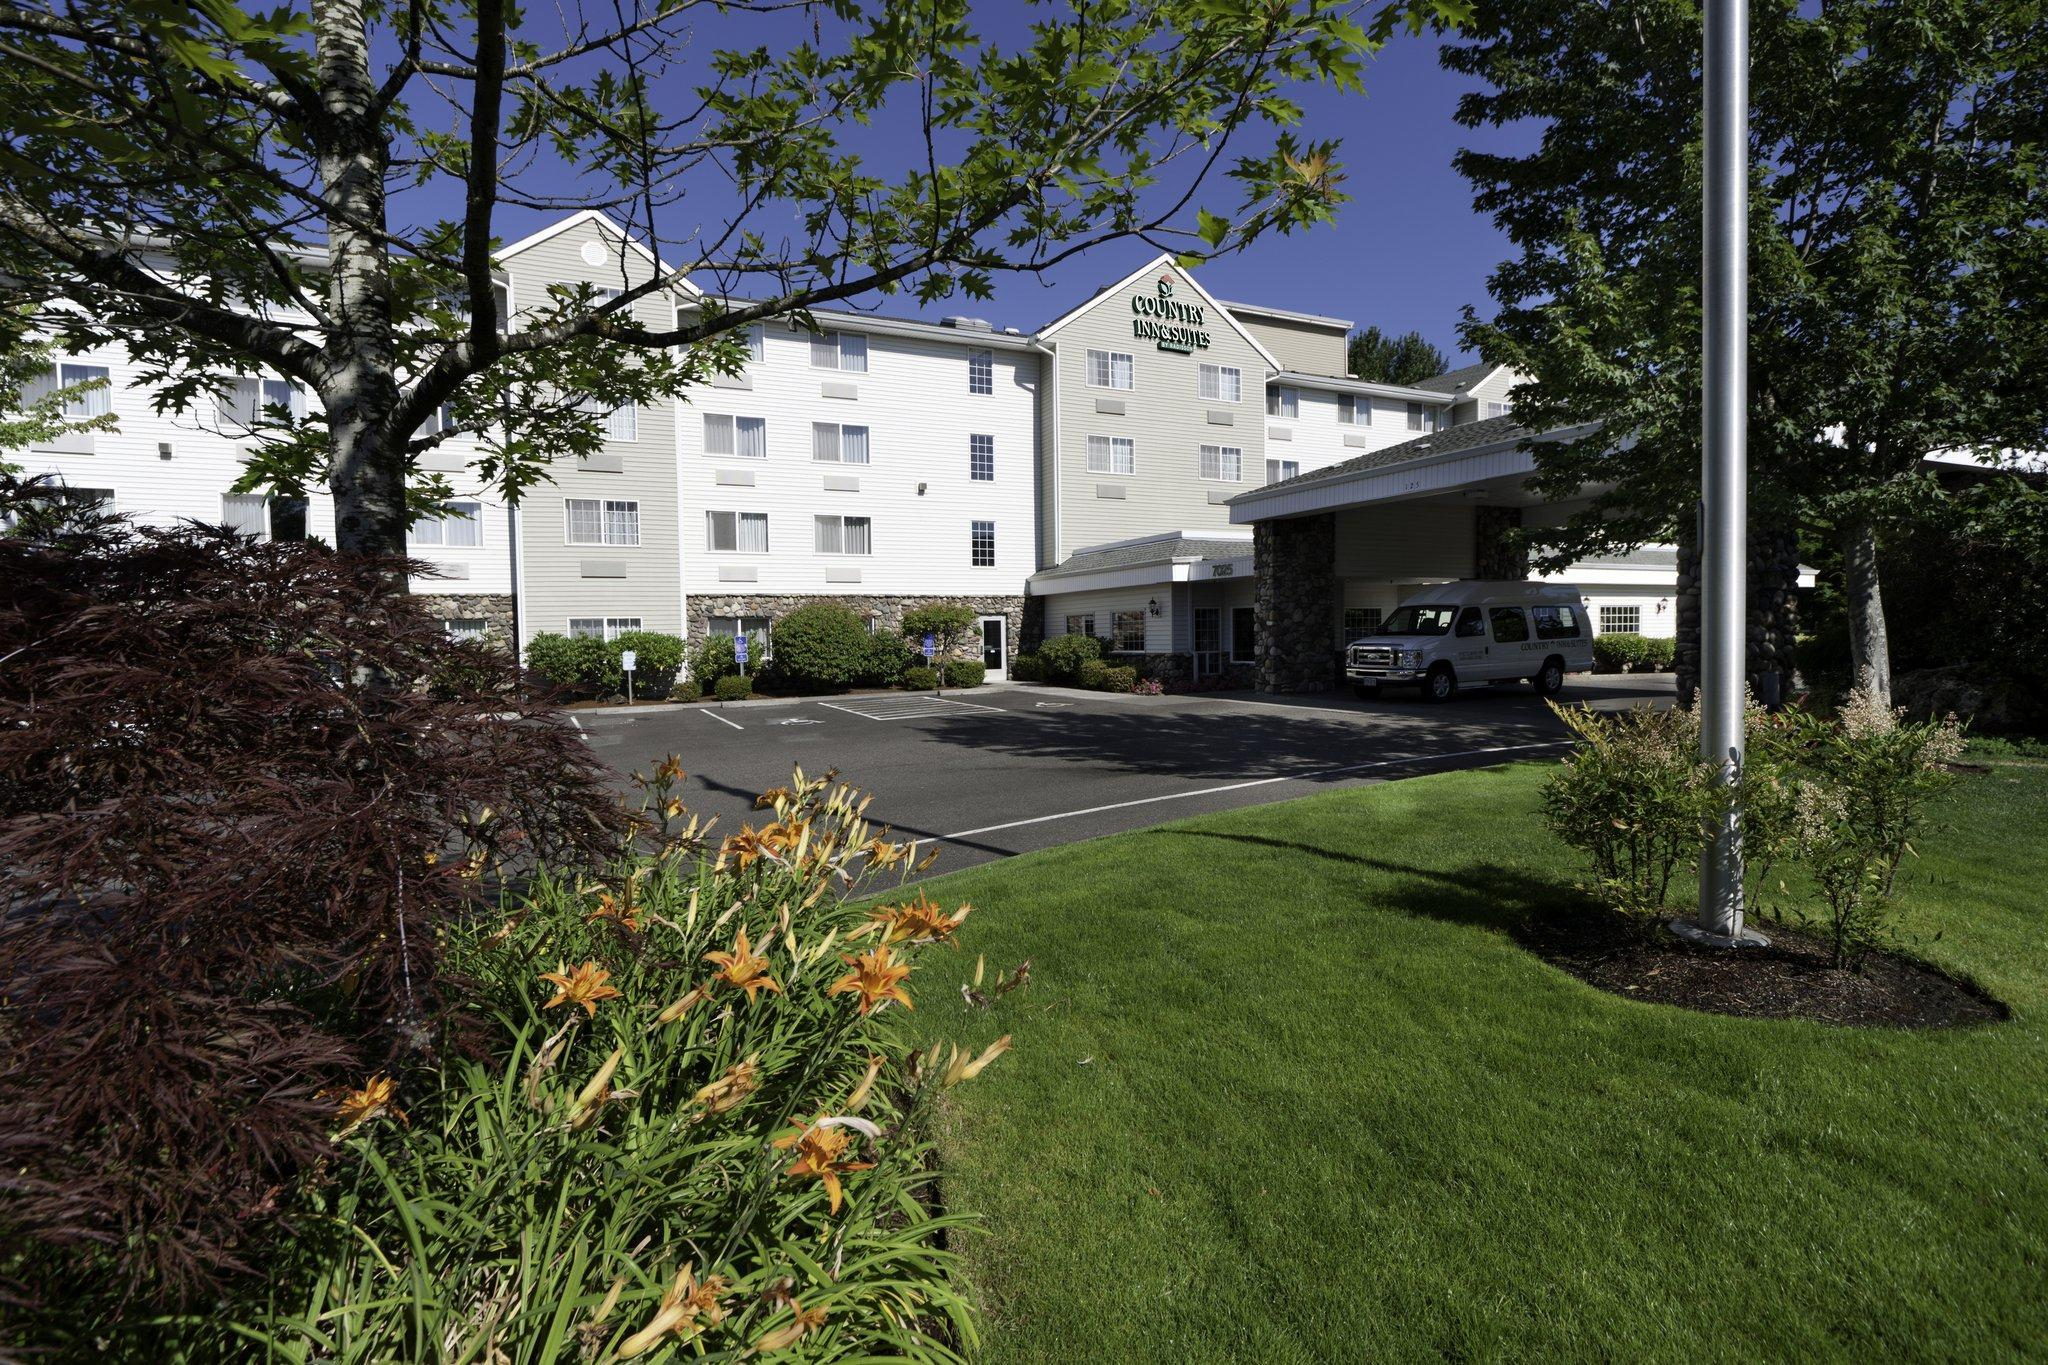 Country Inn & Suites by Radisson, Portland International Airport, OR Reviews